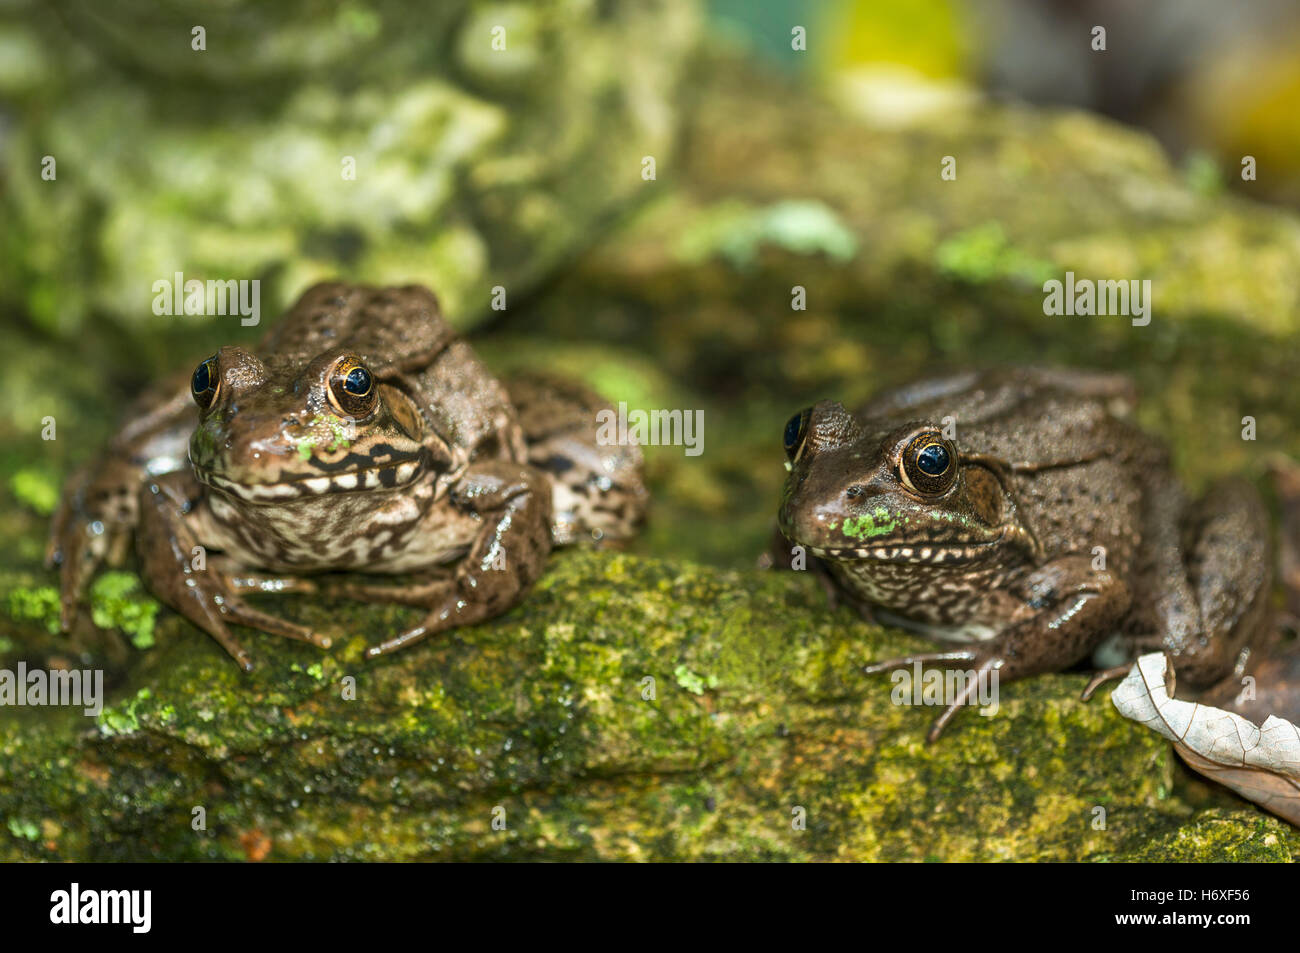 Southern leopard frog (Lithobates sphenocephalus).  Tennessee, US. - Stock Image